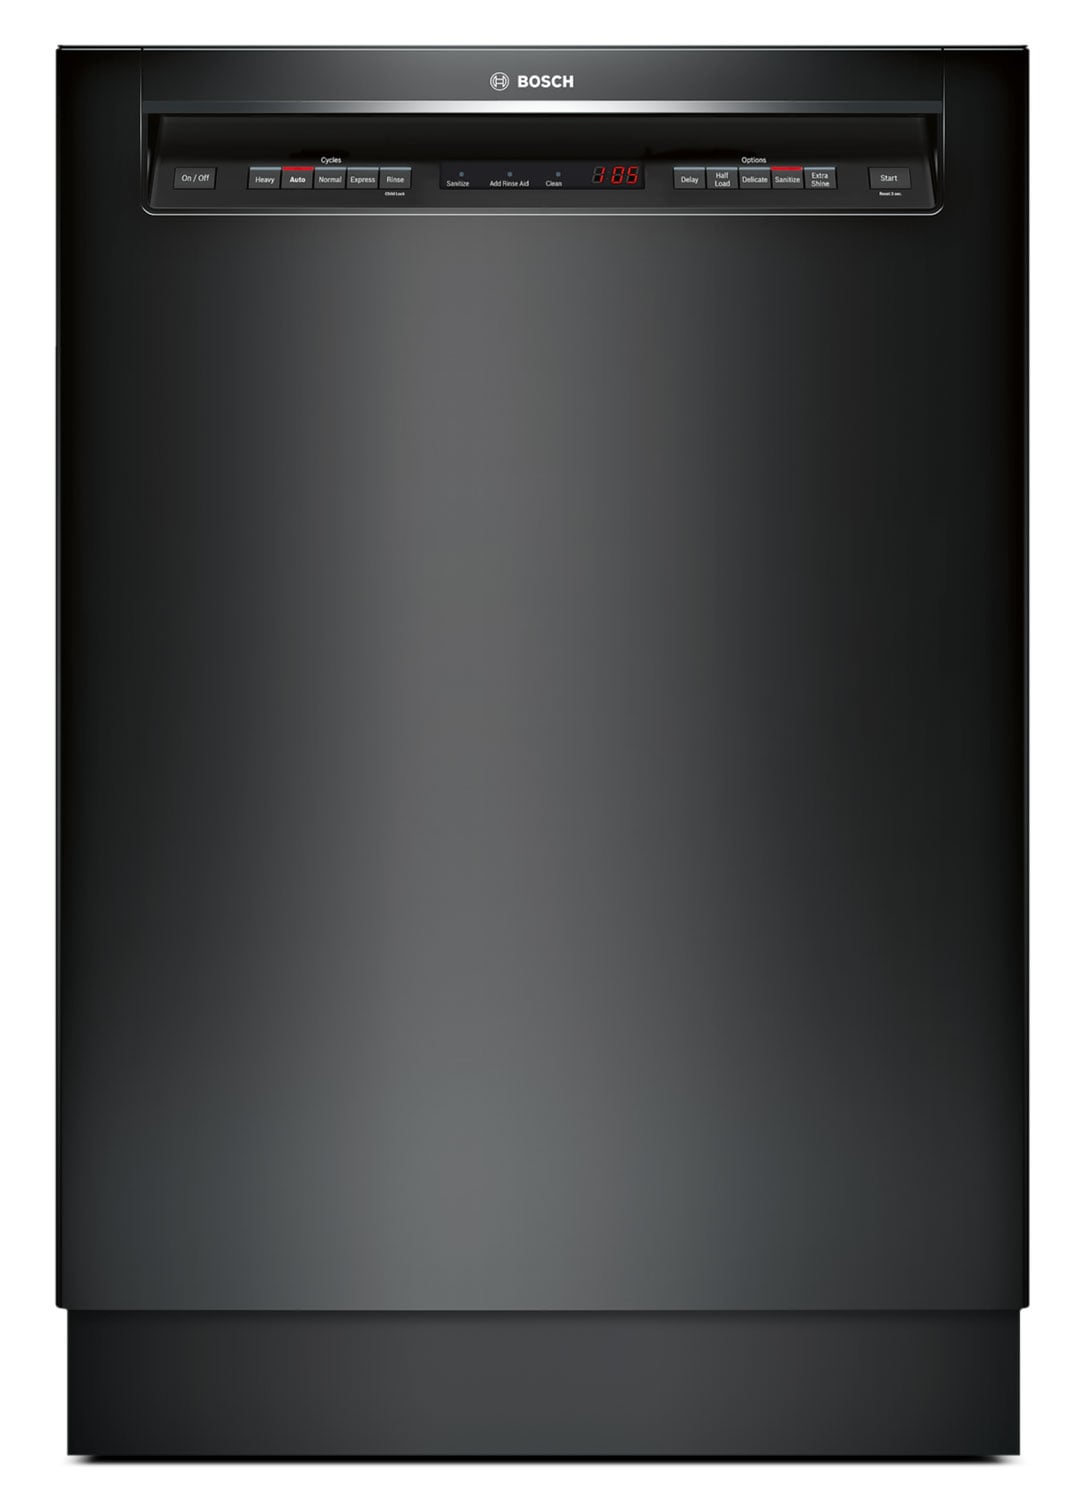 "Clean-Up - Bosch Black 24"" Dishwasher - SHE65T56UC"